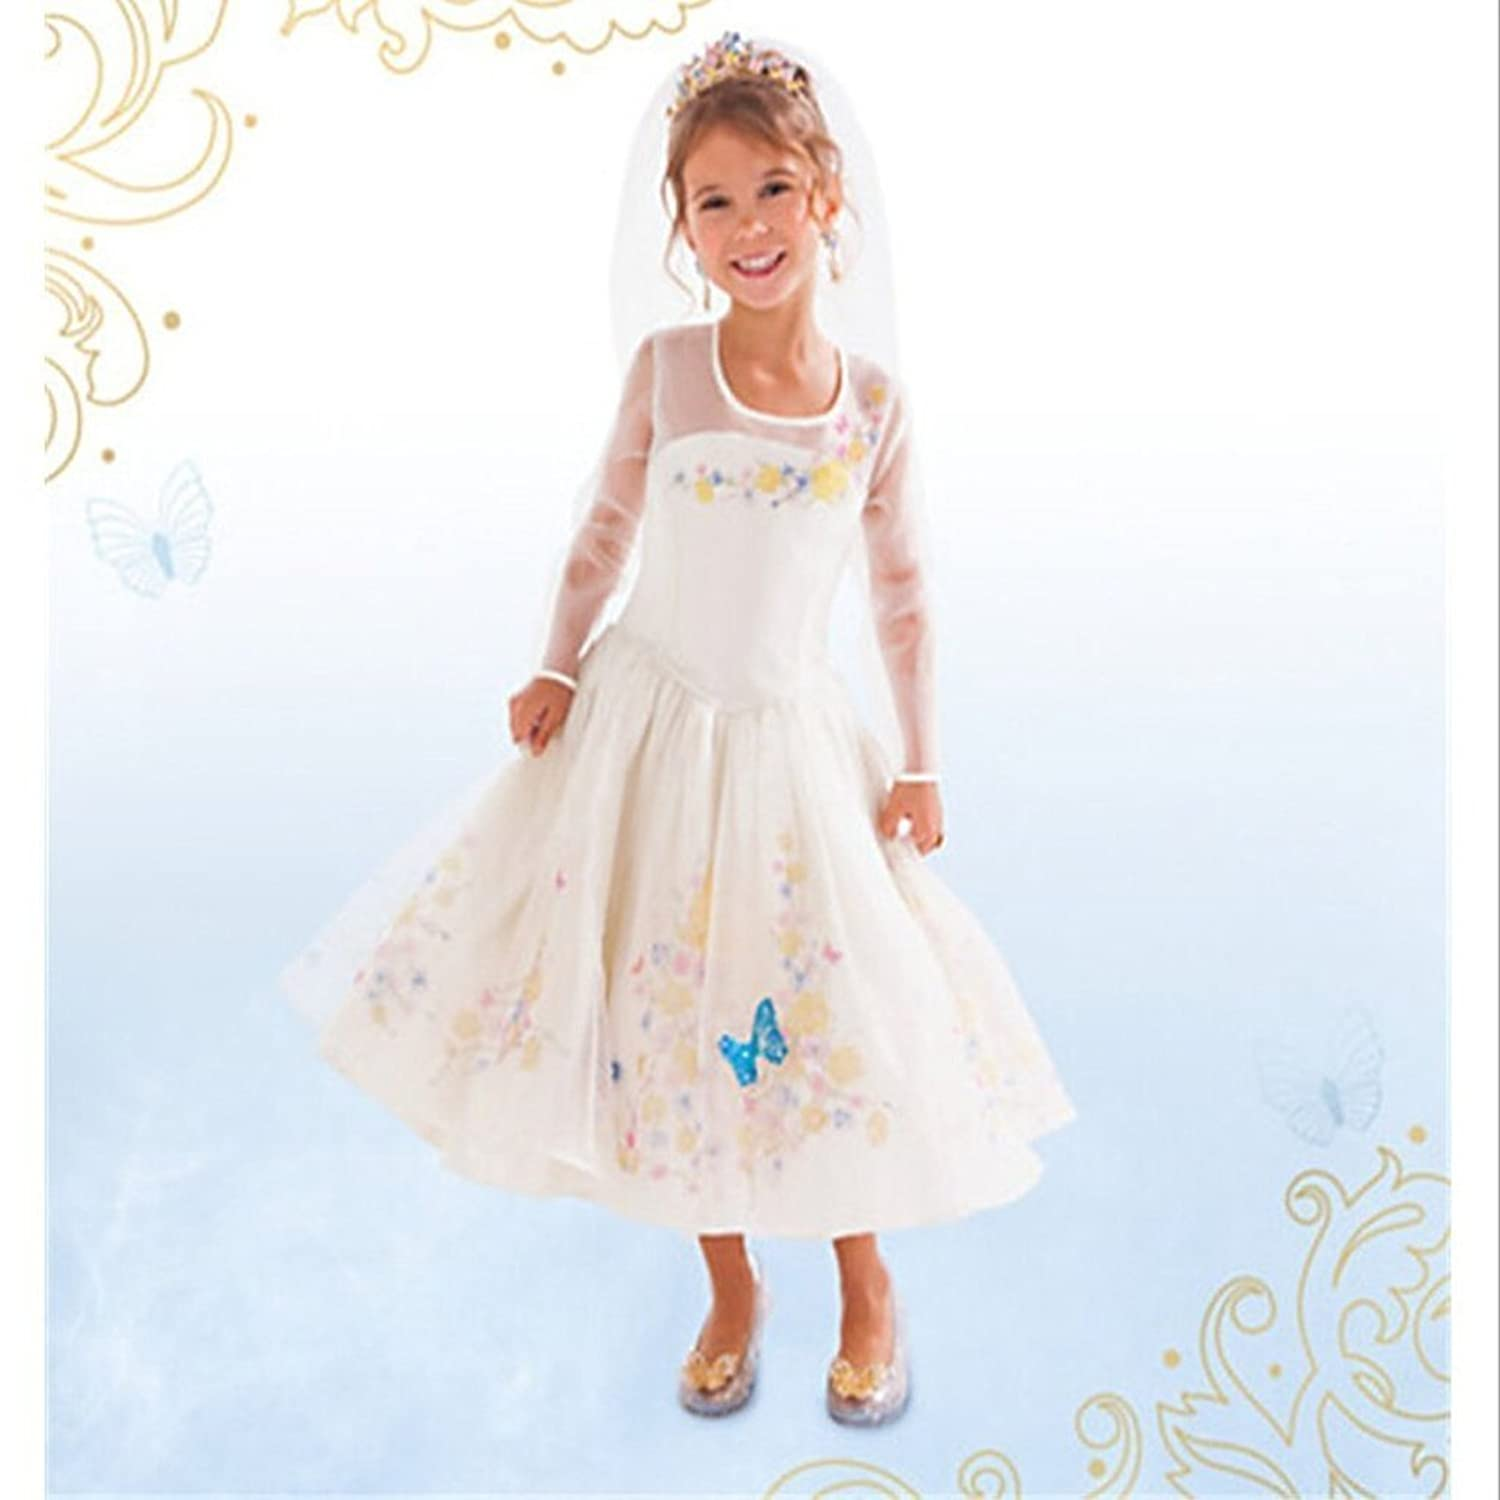 Eyekepper Cinderella dress white Ella 's wedding dress costume cosplay girl женское платье eyekepper crewneck dx8090